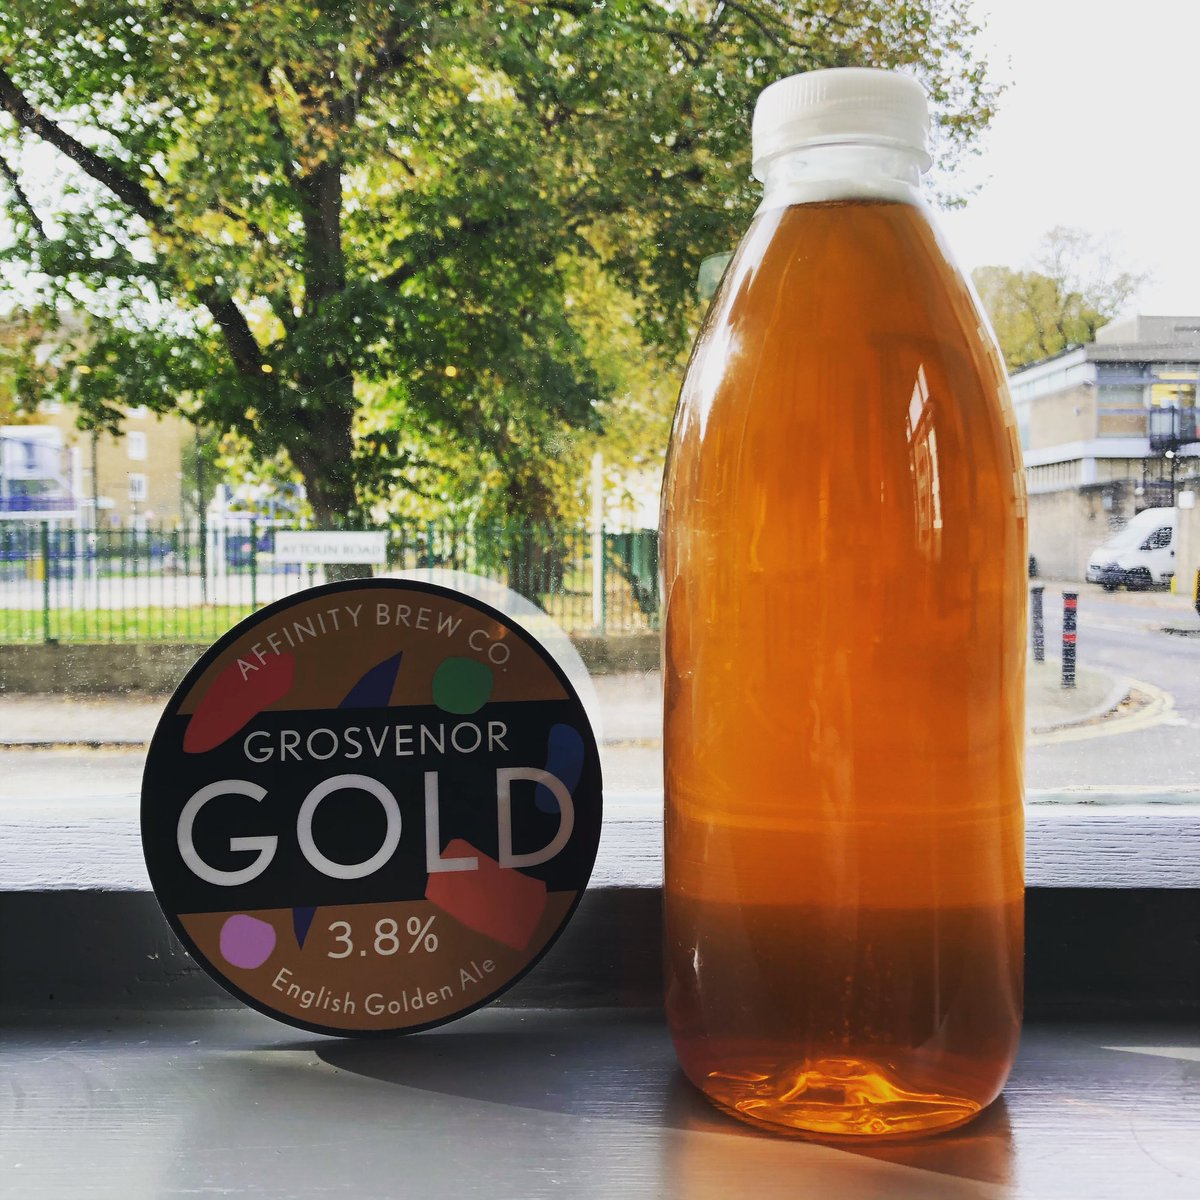 Fresh cask of our House Golden Ale going on today. 🙌🏻  Brewed downstairs by our friends @AffinityBrewCo. 👊🏻  Available for drinking-in pints and take-away litres. 🍺  #brewpub #cask #ale #realale #gold https://t.co/RcT43b7jps